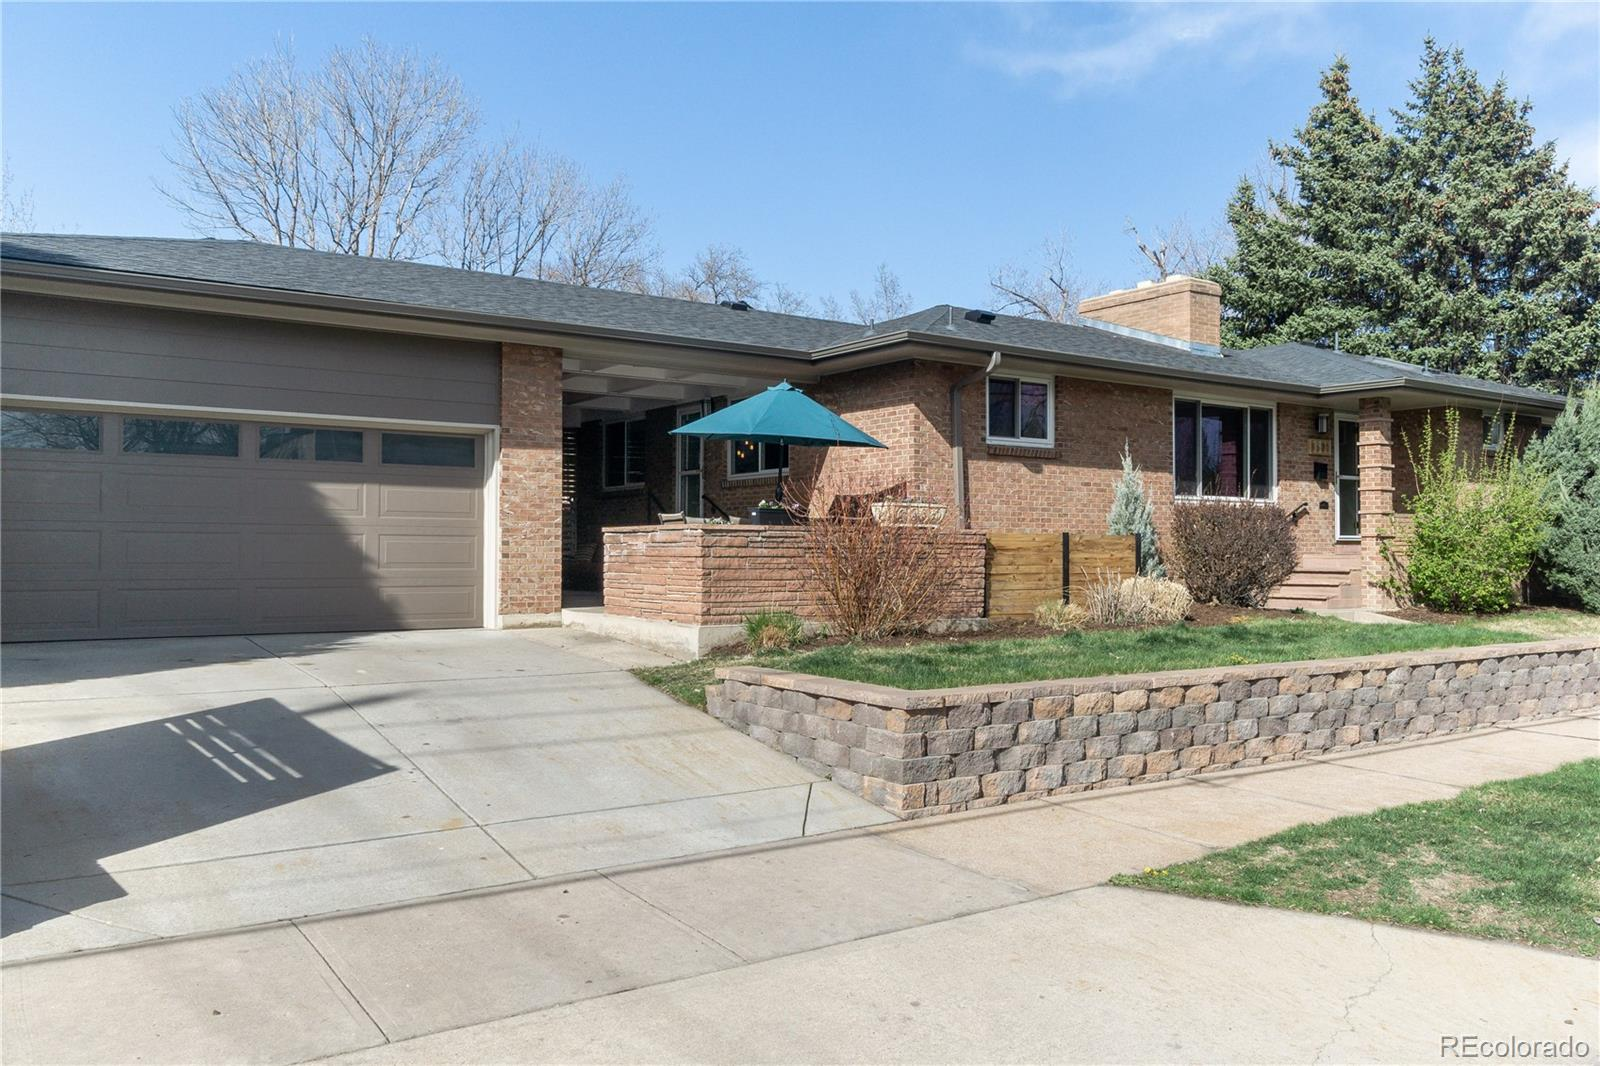 3501 W 42nd Avenue Property Photo - Denver, CO real estate listing